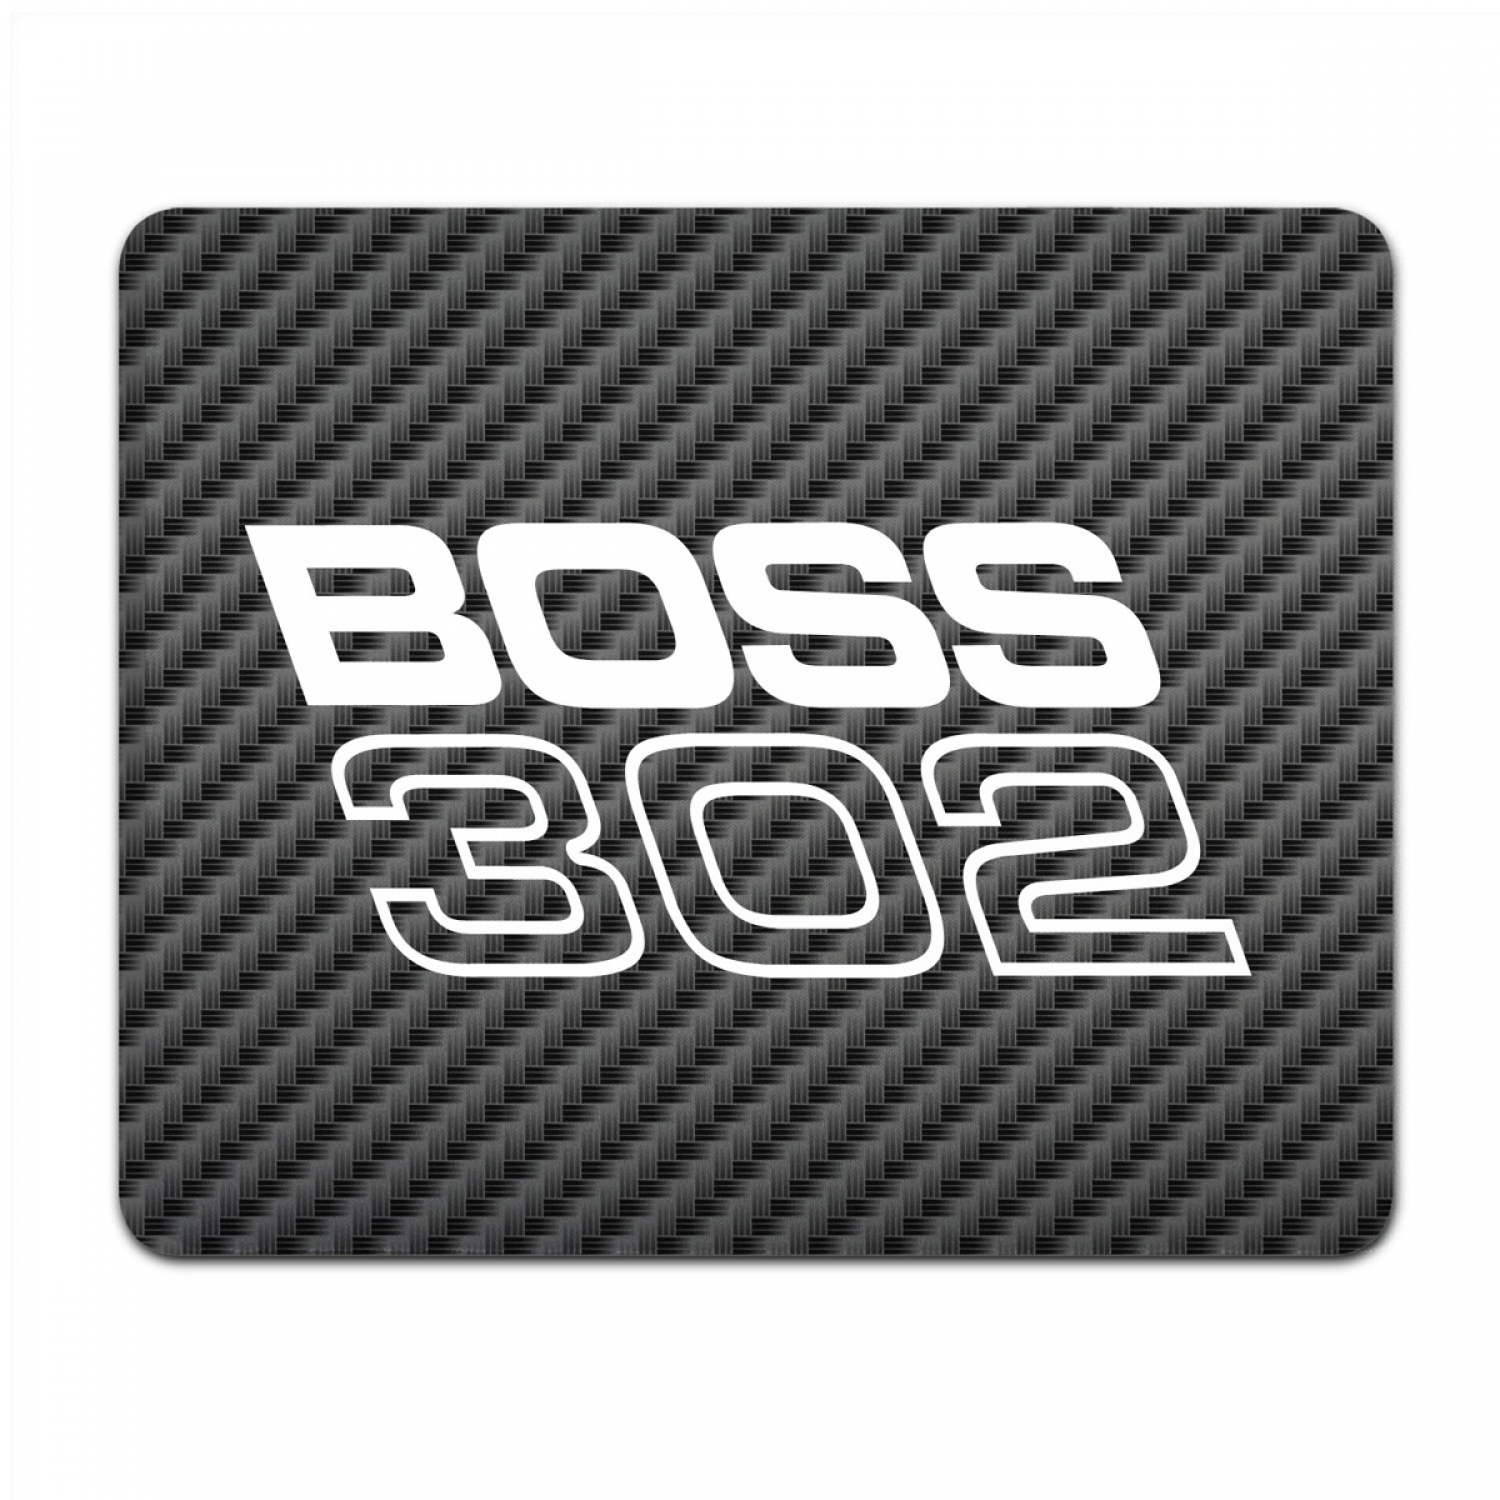 Ford Mustang Boss 302 Black Carbon Fiber Texture Graphic PC Mouse Pad